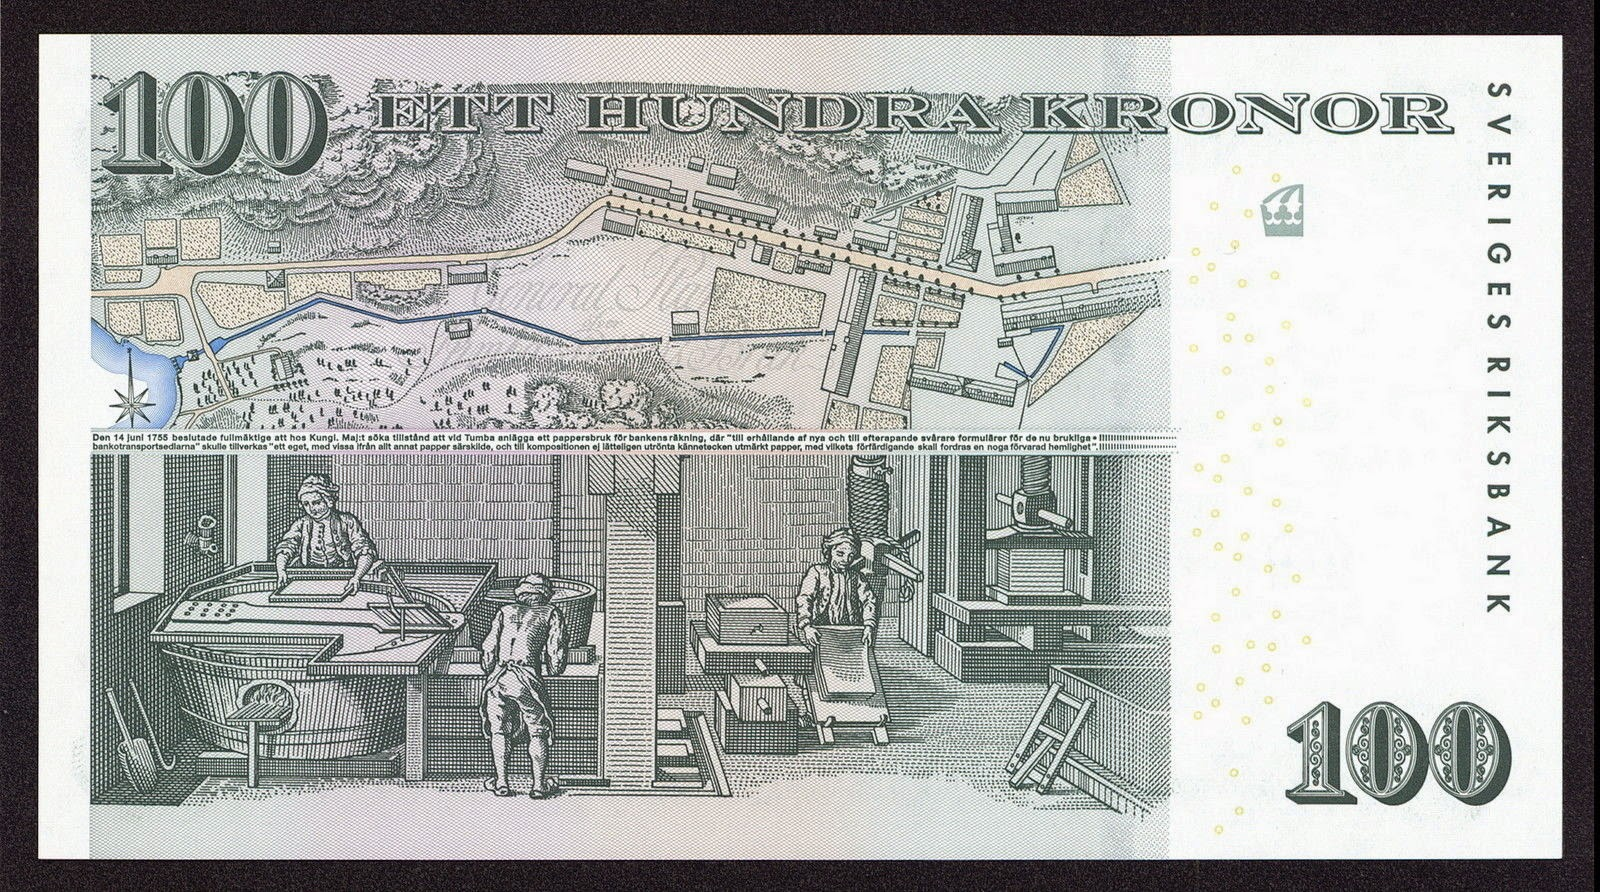 Sweden Currency 100 Swedish Krona commemorative banknote was issued on 26 May 2005 to celebrate the 250th anniversary of the founding of Tumba Papermill